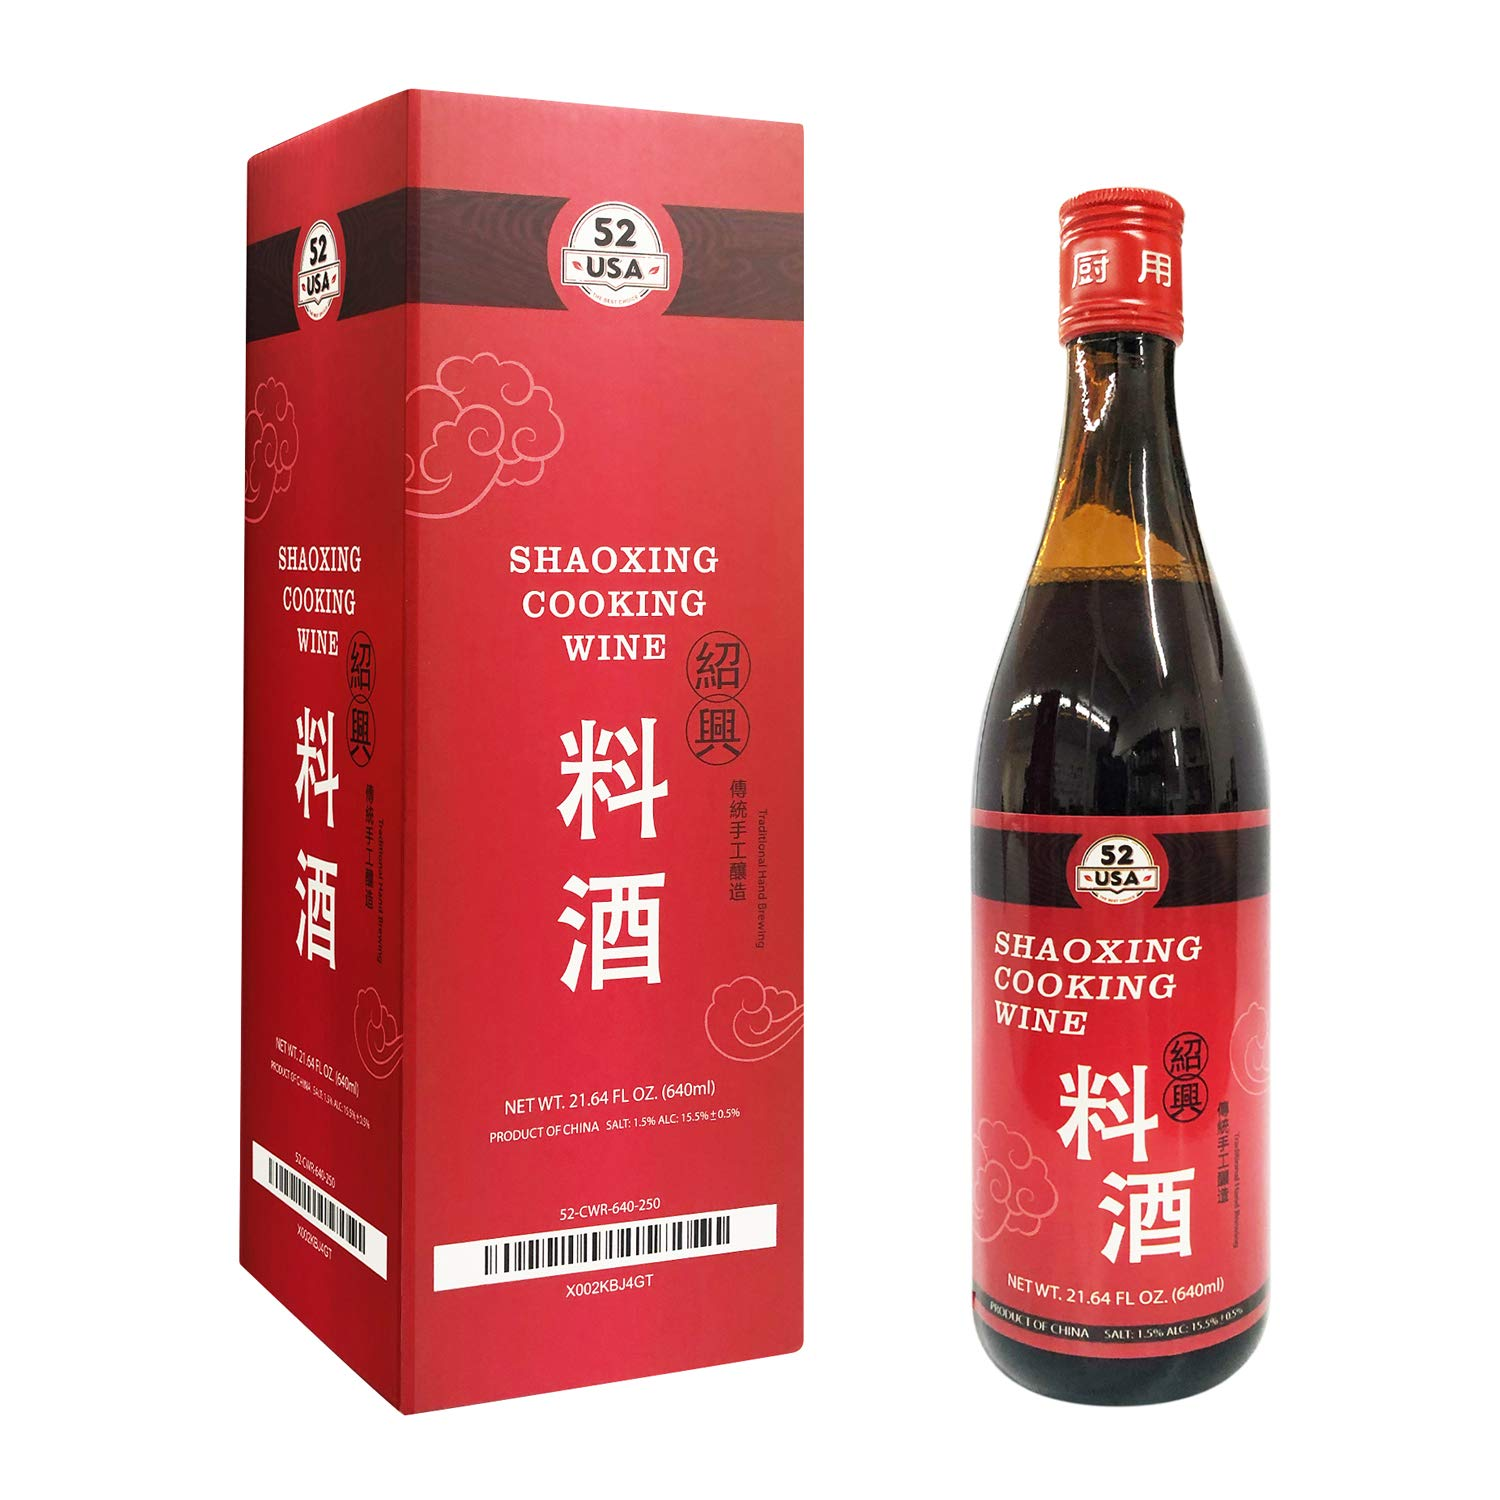 52USA Chinese Shaoxing Cooking Wine, Classic Shaoxing Wine, Traditional Chinese Cooking Wine, Rice Cooking Wine fermented from rice, 640ml. (Regular, 1 Pack)